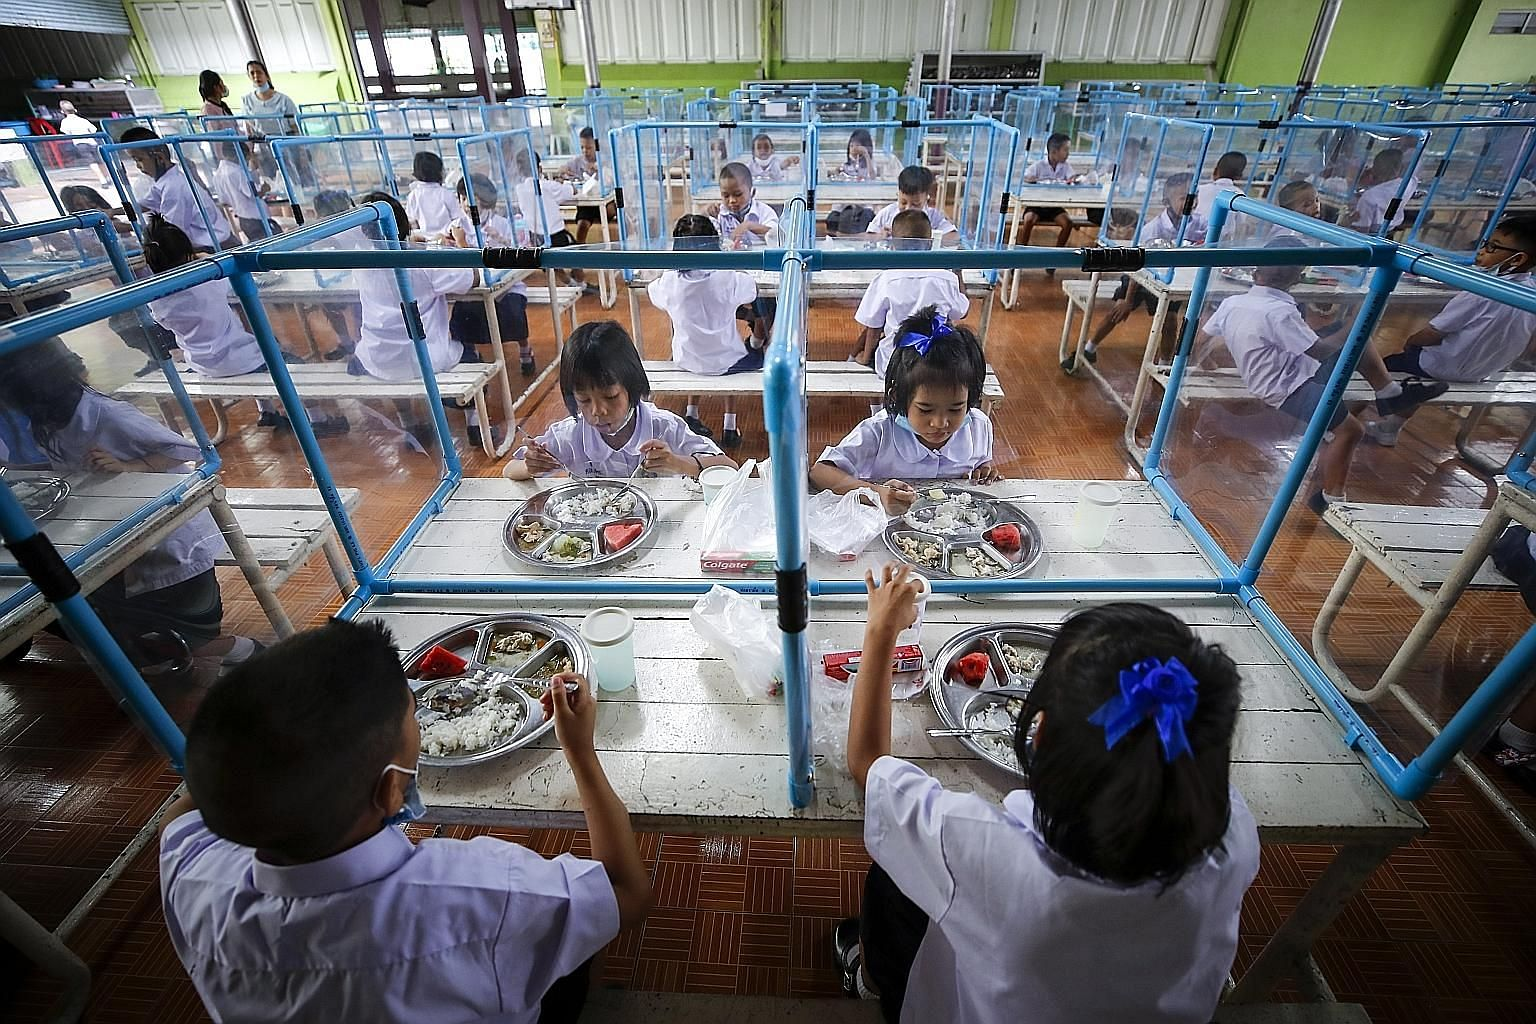 Students eating lunch together, separated by plastic sheets, at a school in Bangkok yesterday after months of distance learning.